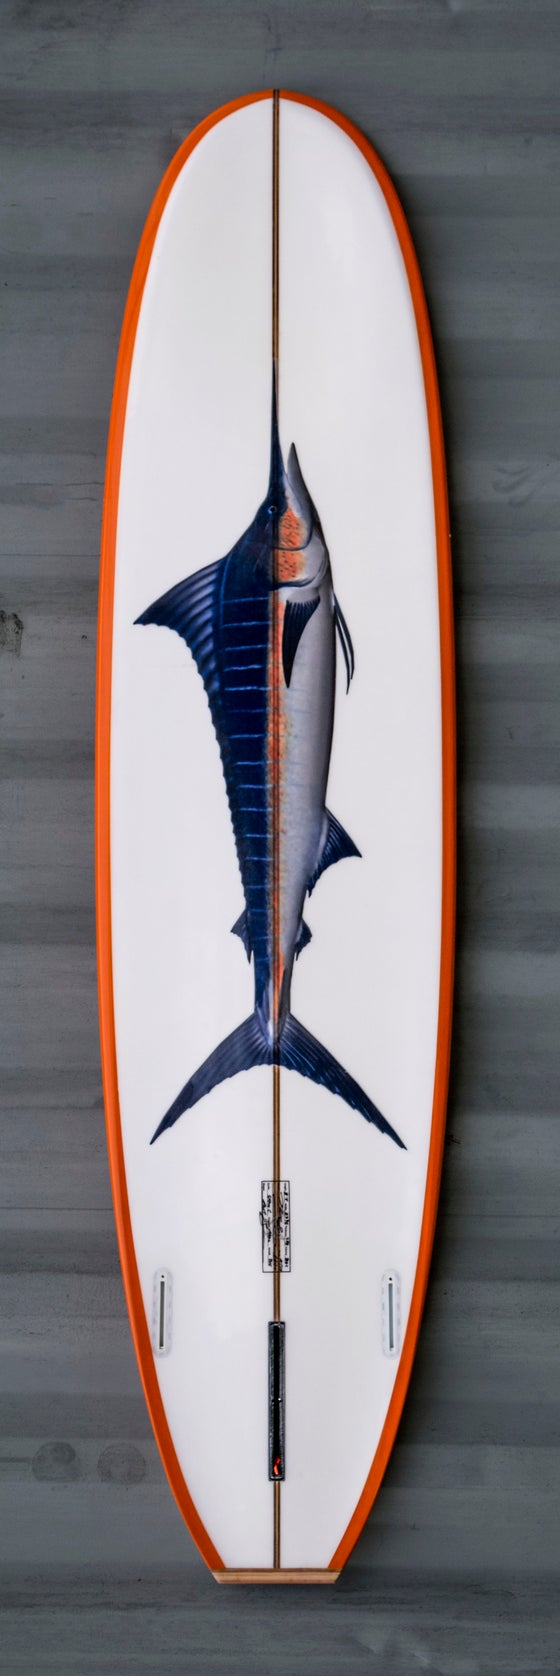 Image of 8'5 custom